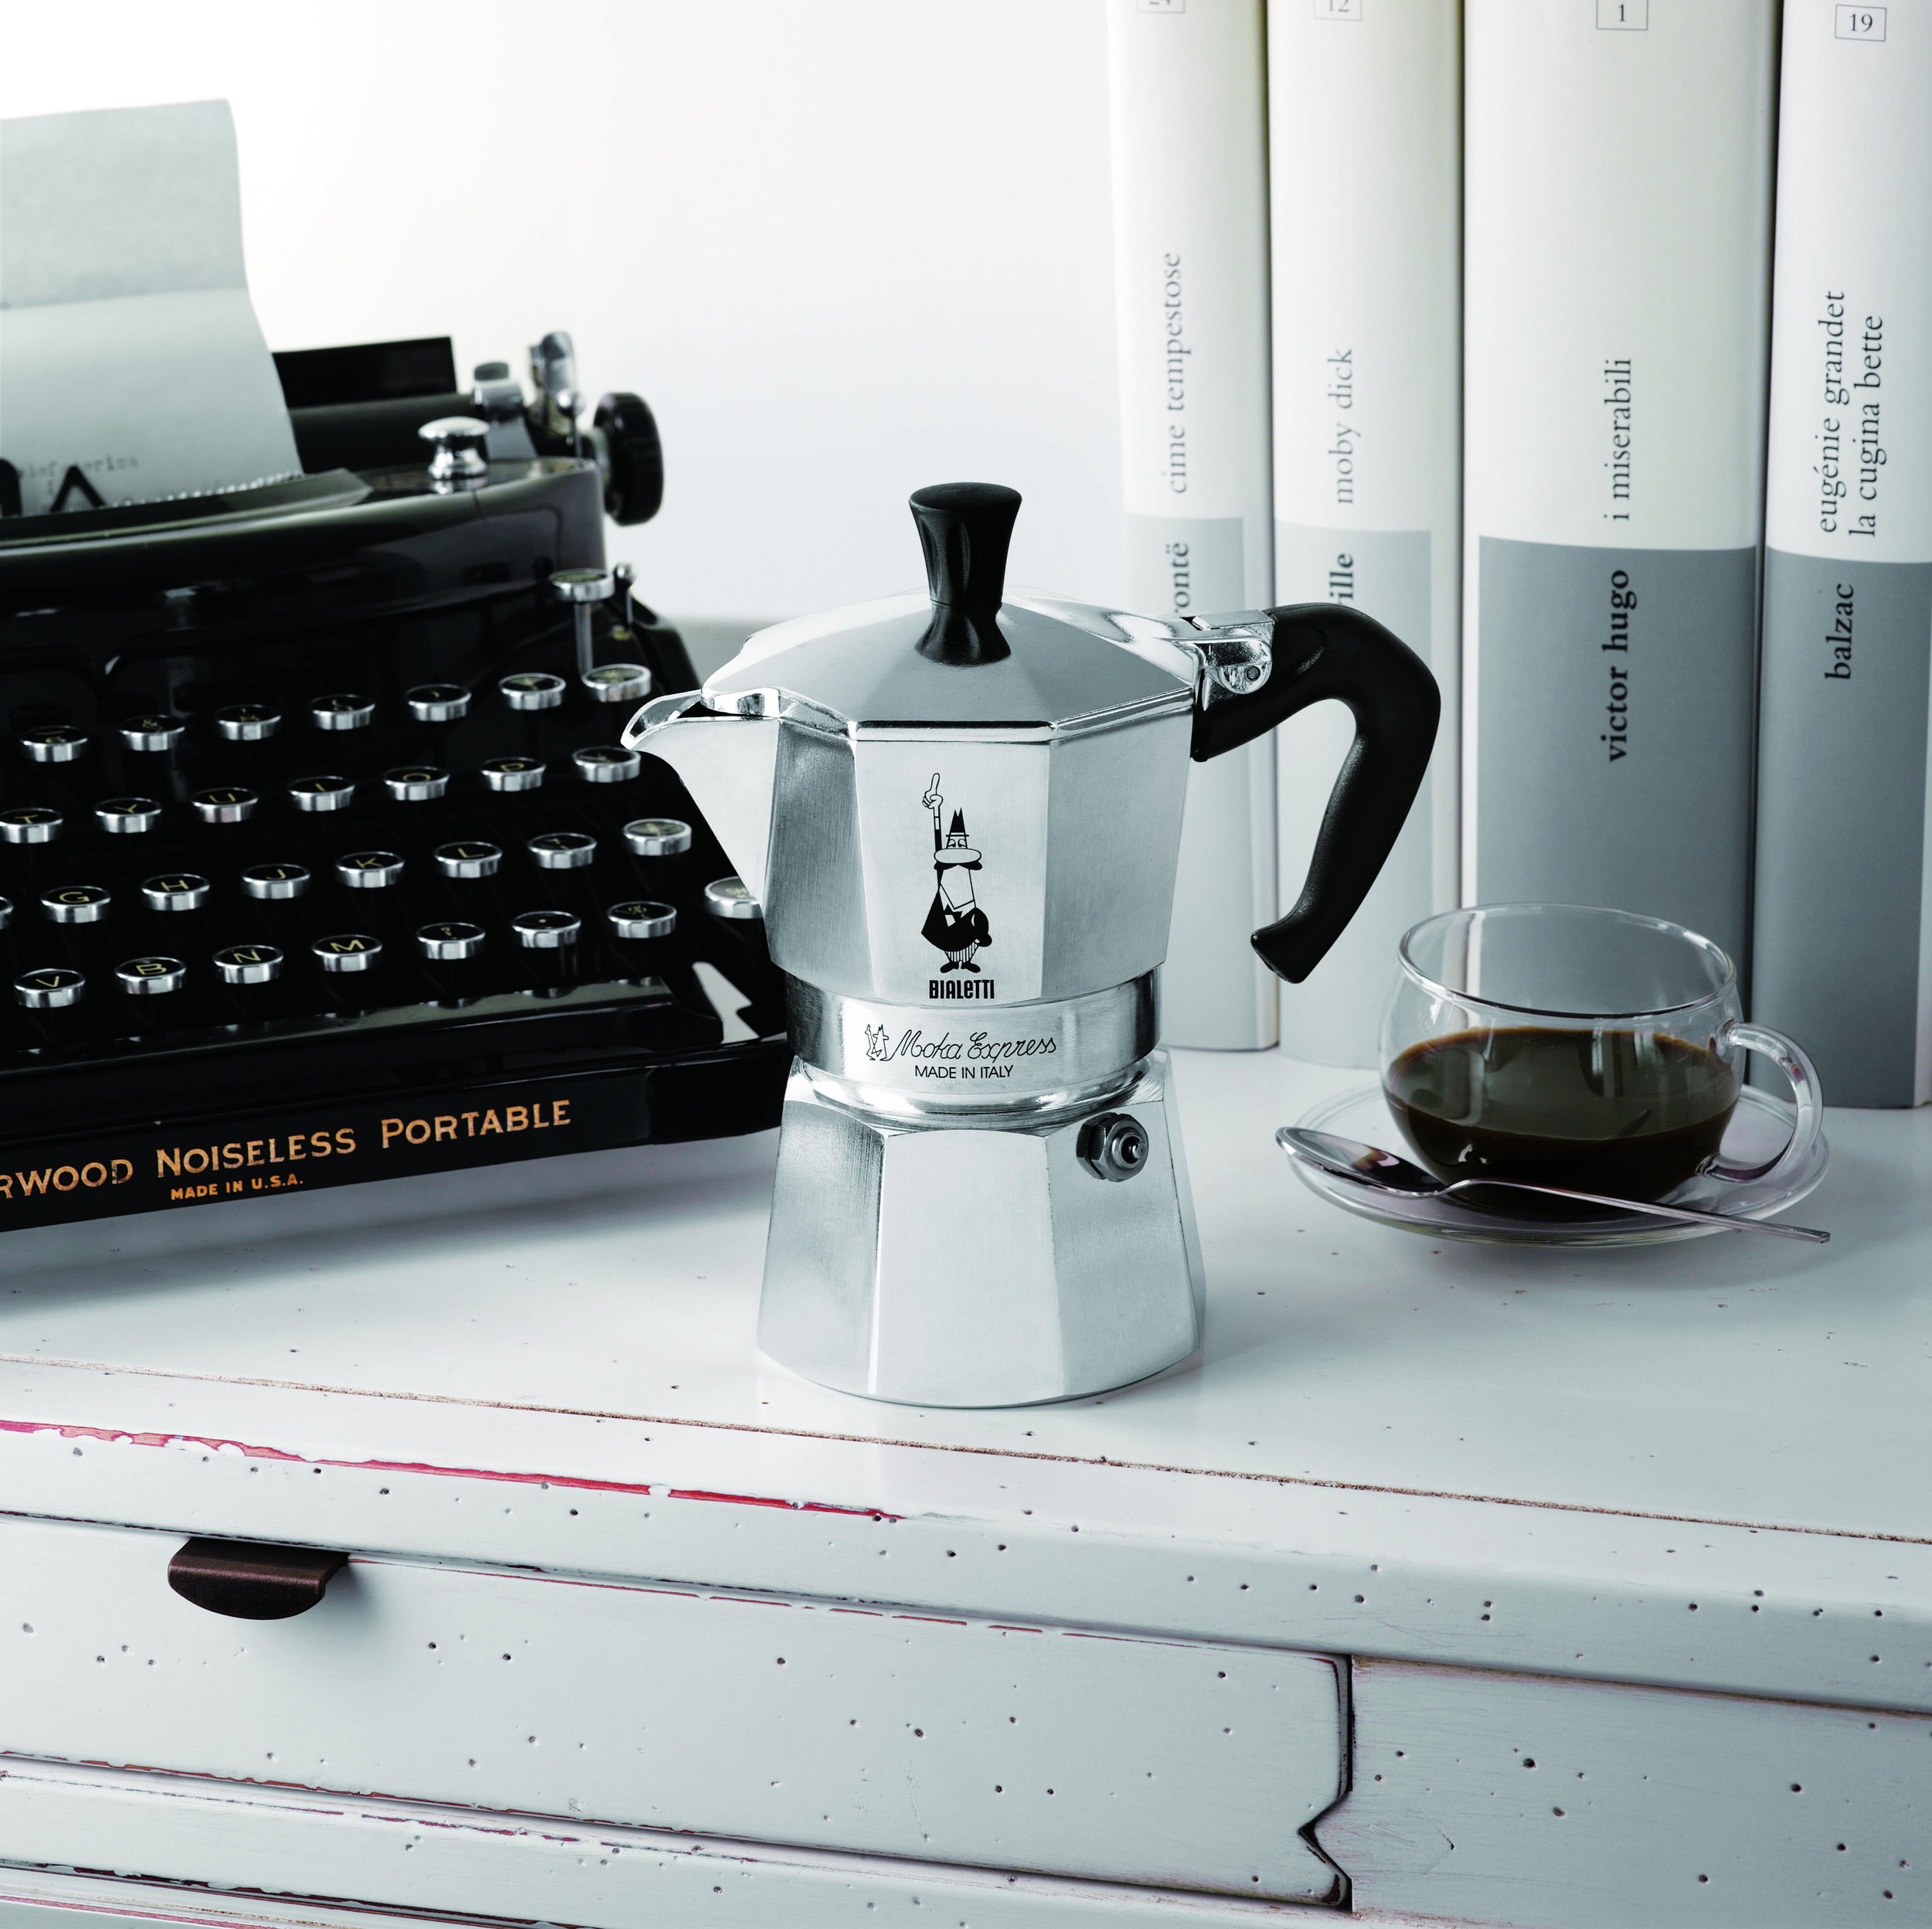 The classic italian 'Bialetti Moka Express' is a product that is built to last, accompanying you for ages.  image source:  https://www.thehomewarescompany.com/catalog/product/view/_ignore_category/1/id/5891/s/bialetti-moka-espresso-maker-12-cup/